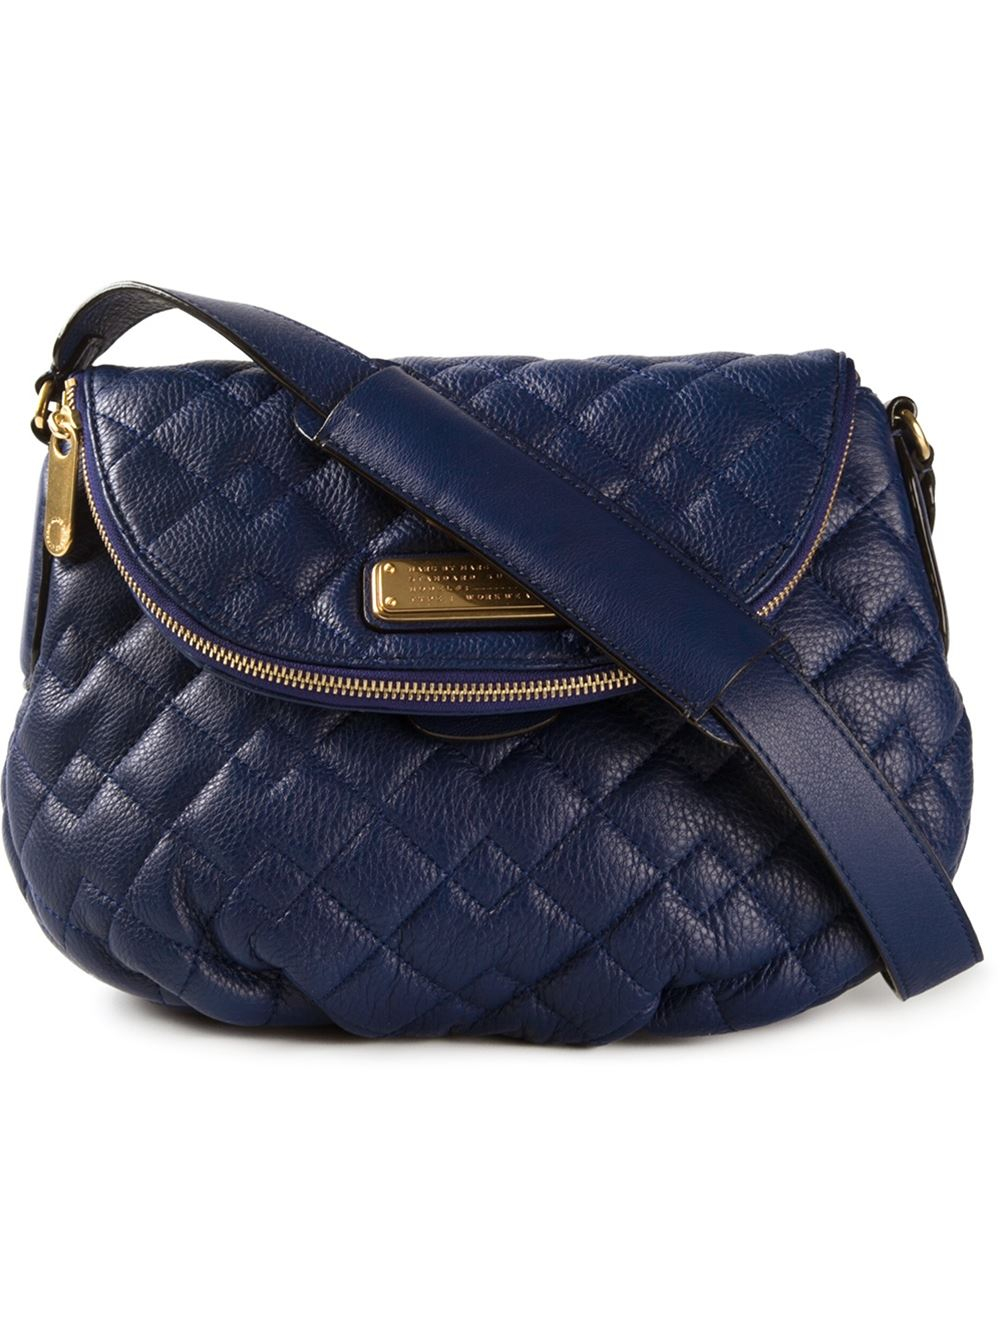 b394340d65 Marc By Marc Jacobs 'New Q Quilted Natasha' Crossbody Bag in Blue - Lyst